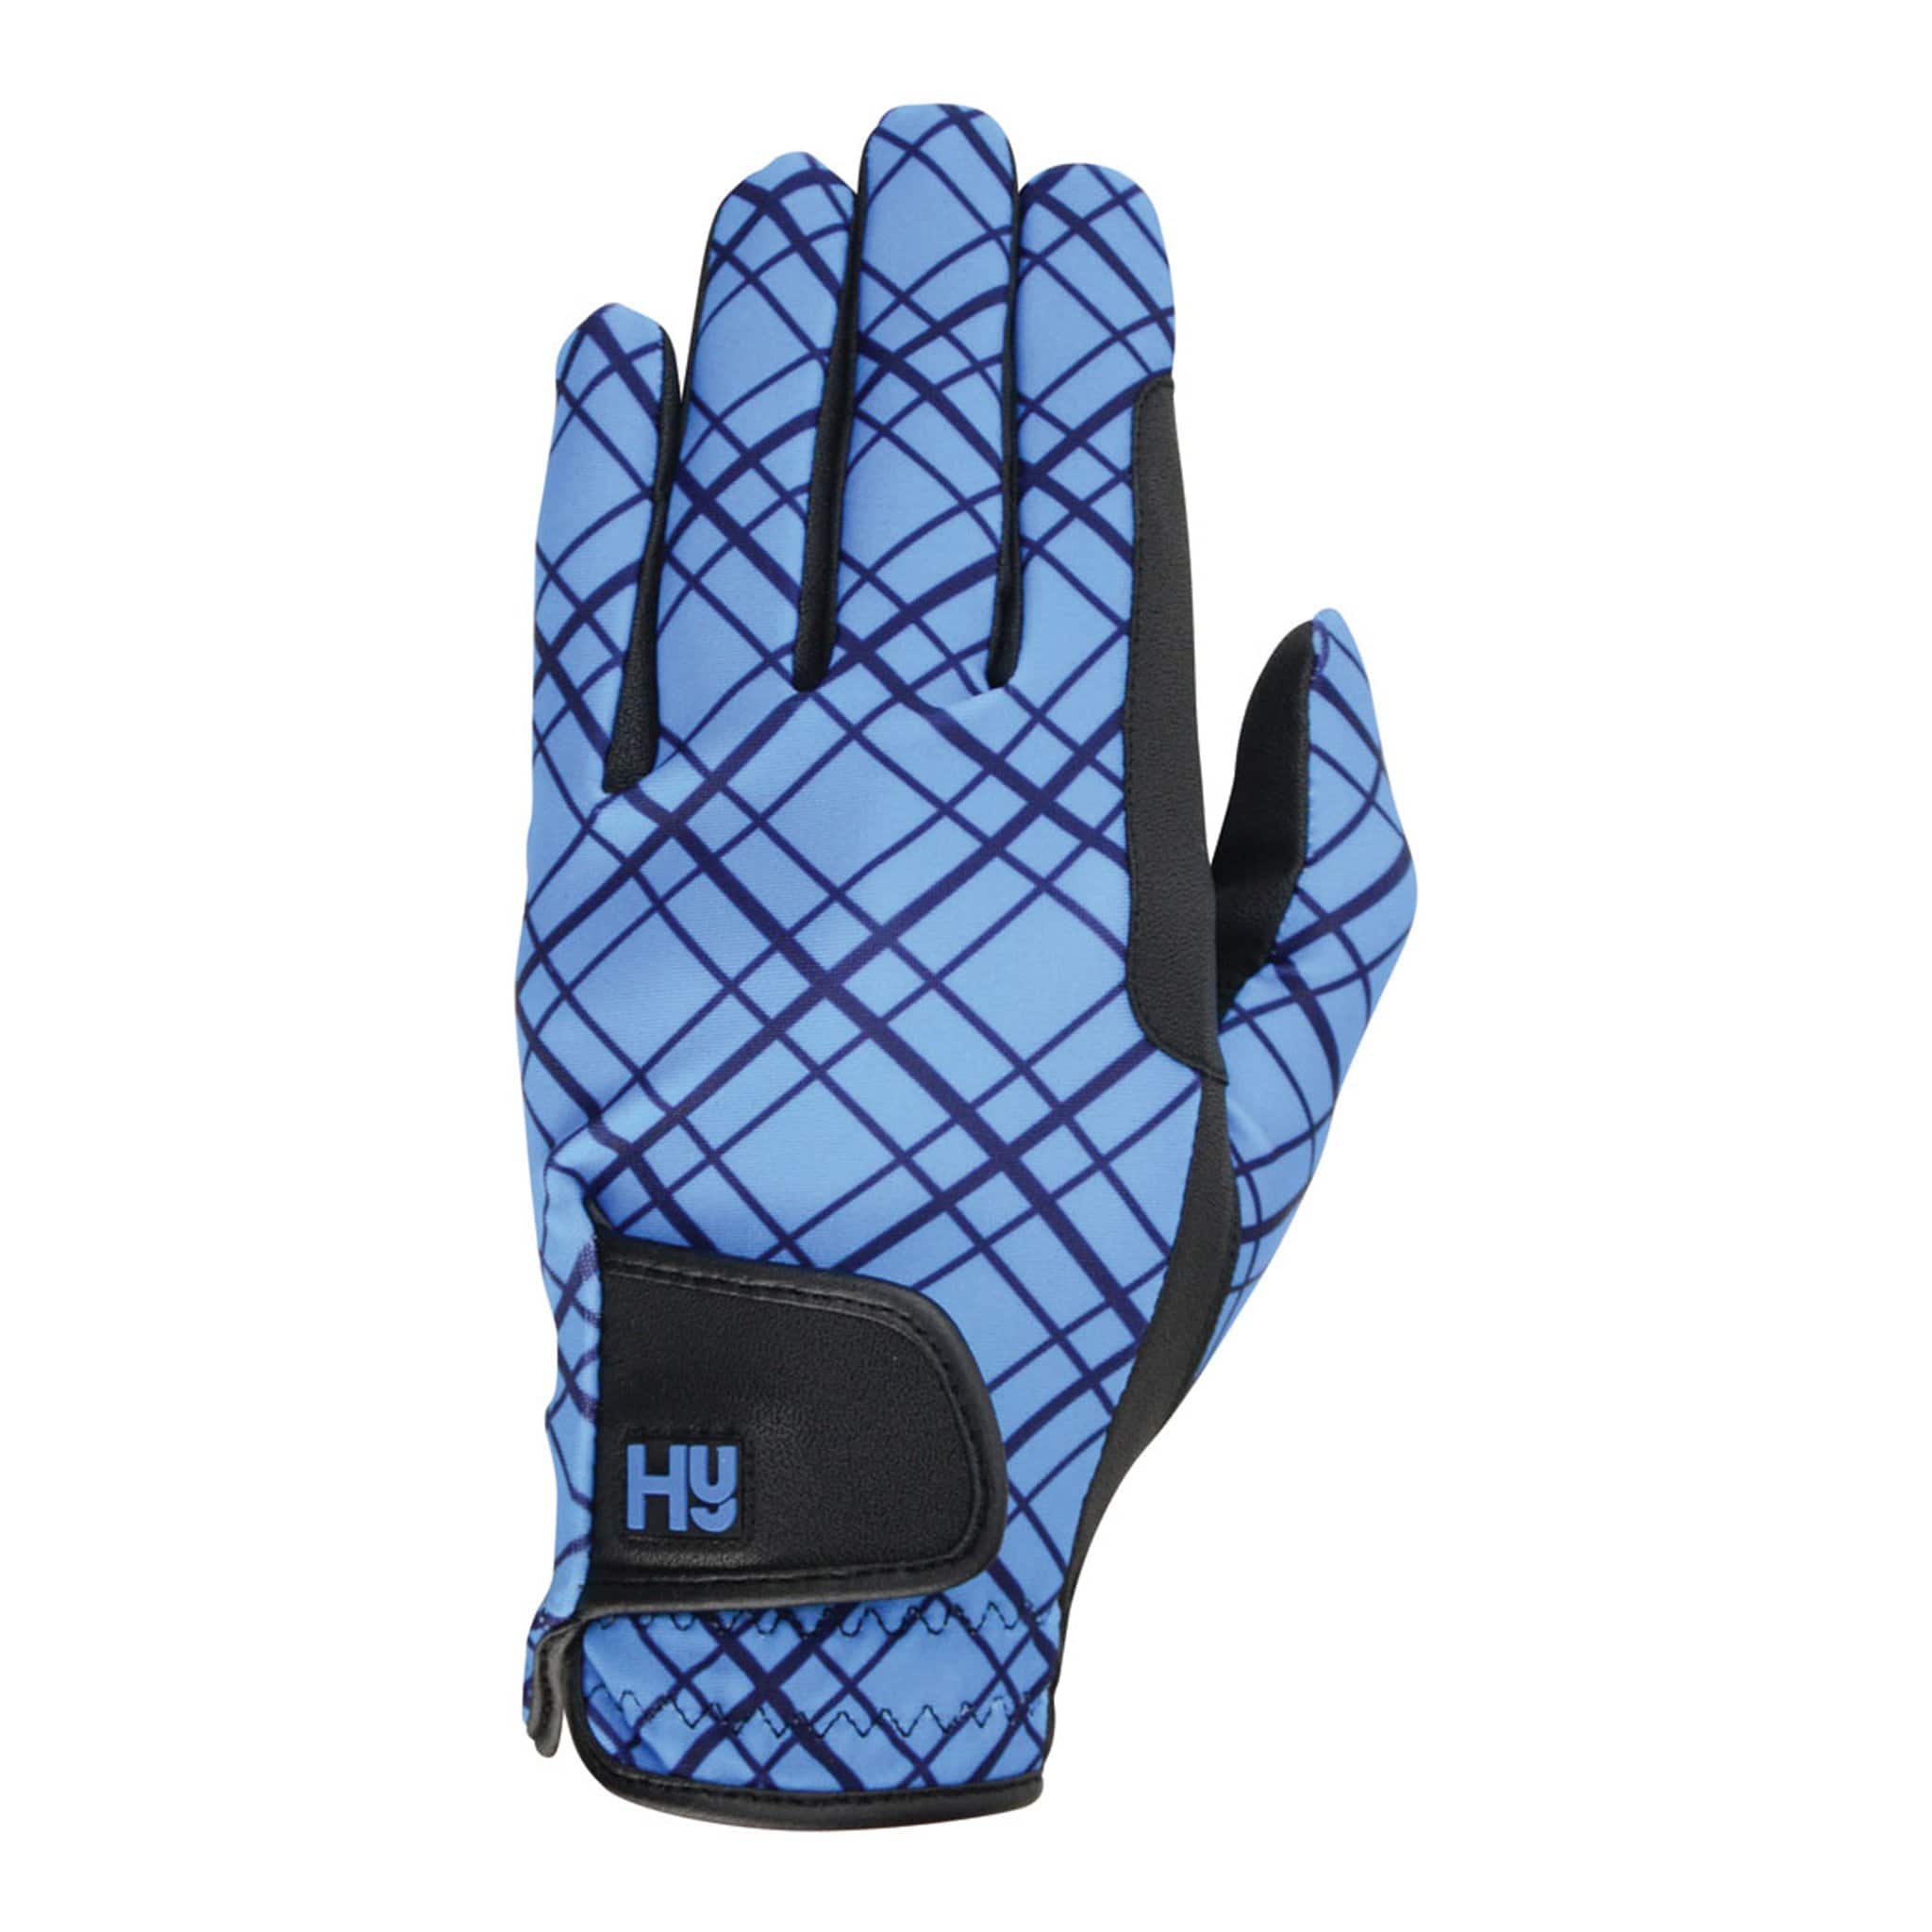 Hy5 Lightweight Printed Riding Gloves Black/Blue 24080.